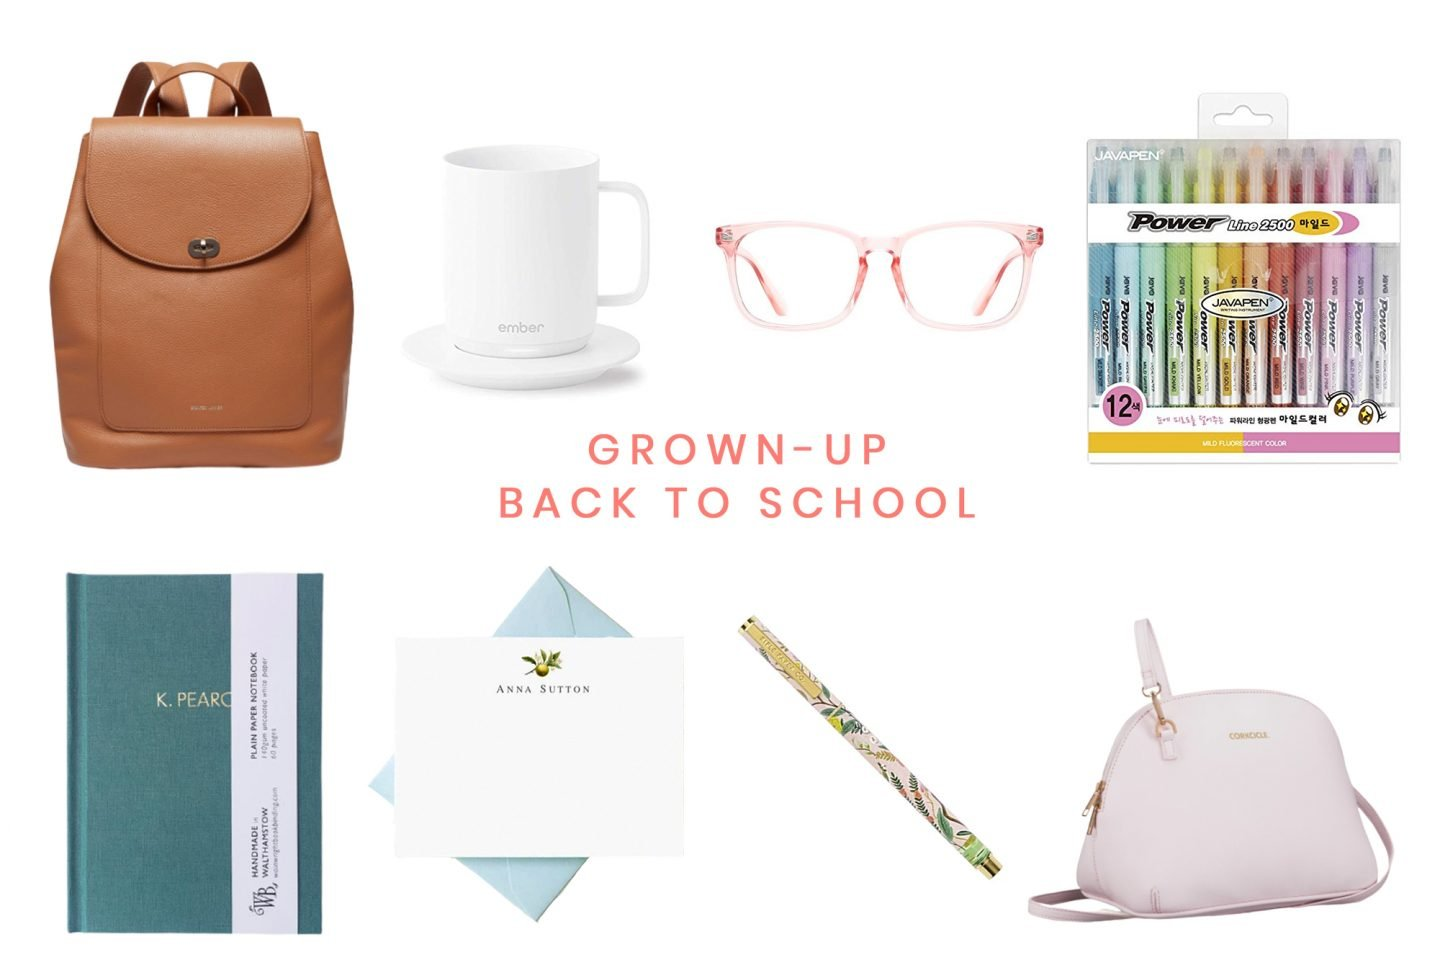 Grown-Up Back to School